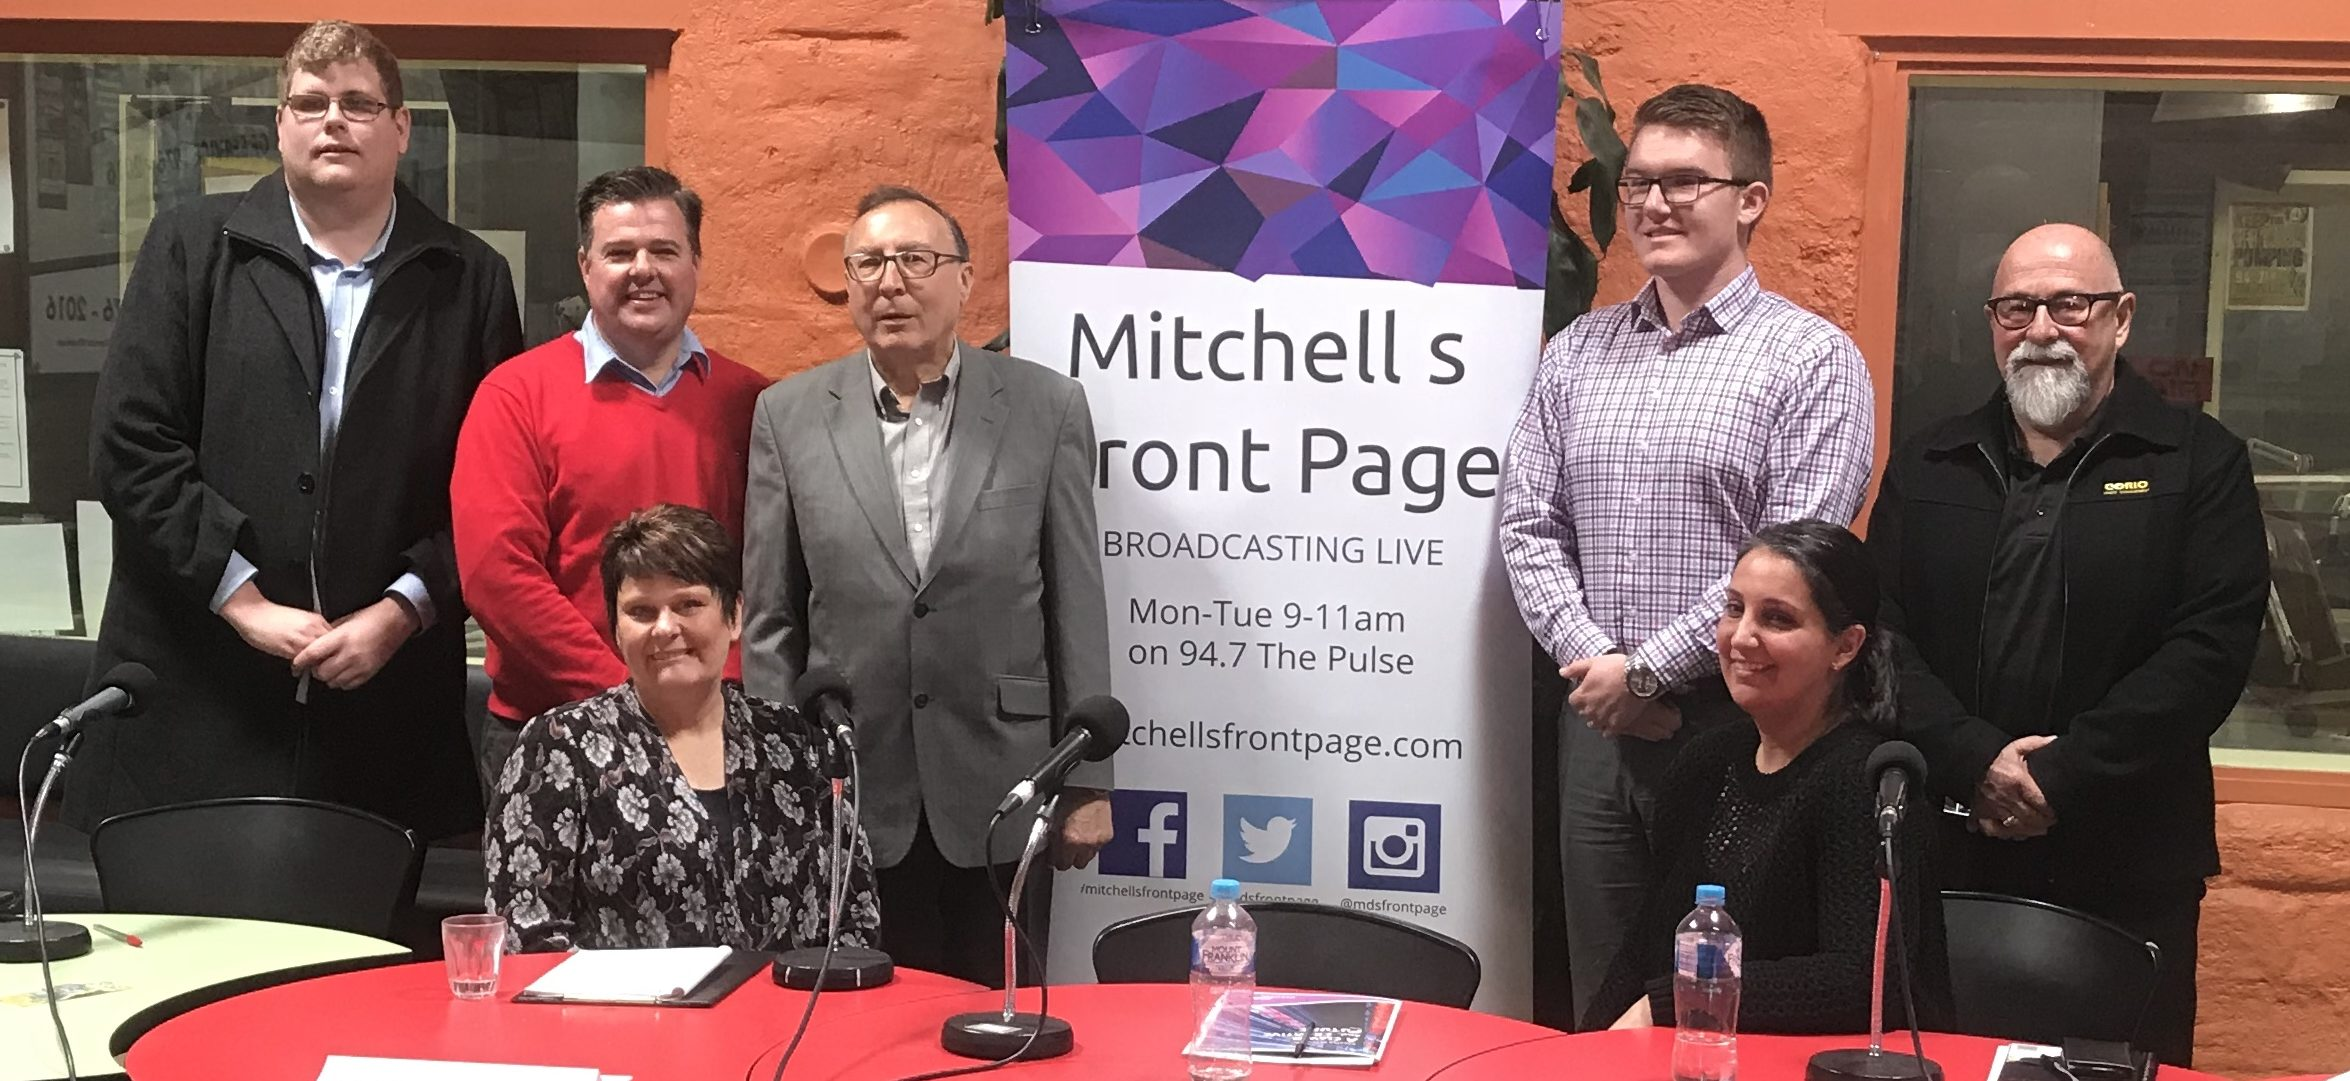 Mitchell Dye with the Windermere candidates